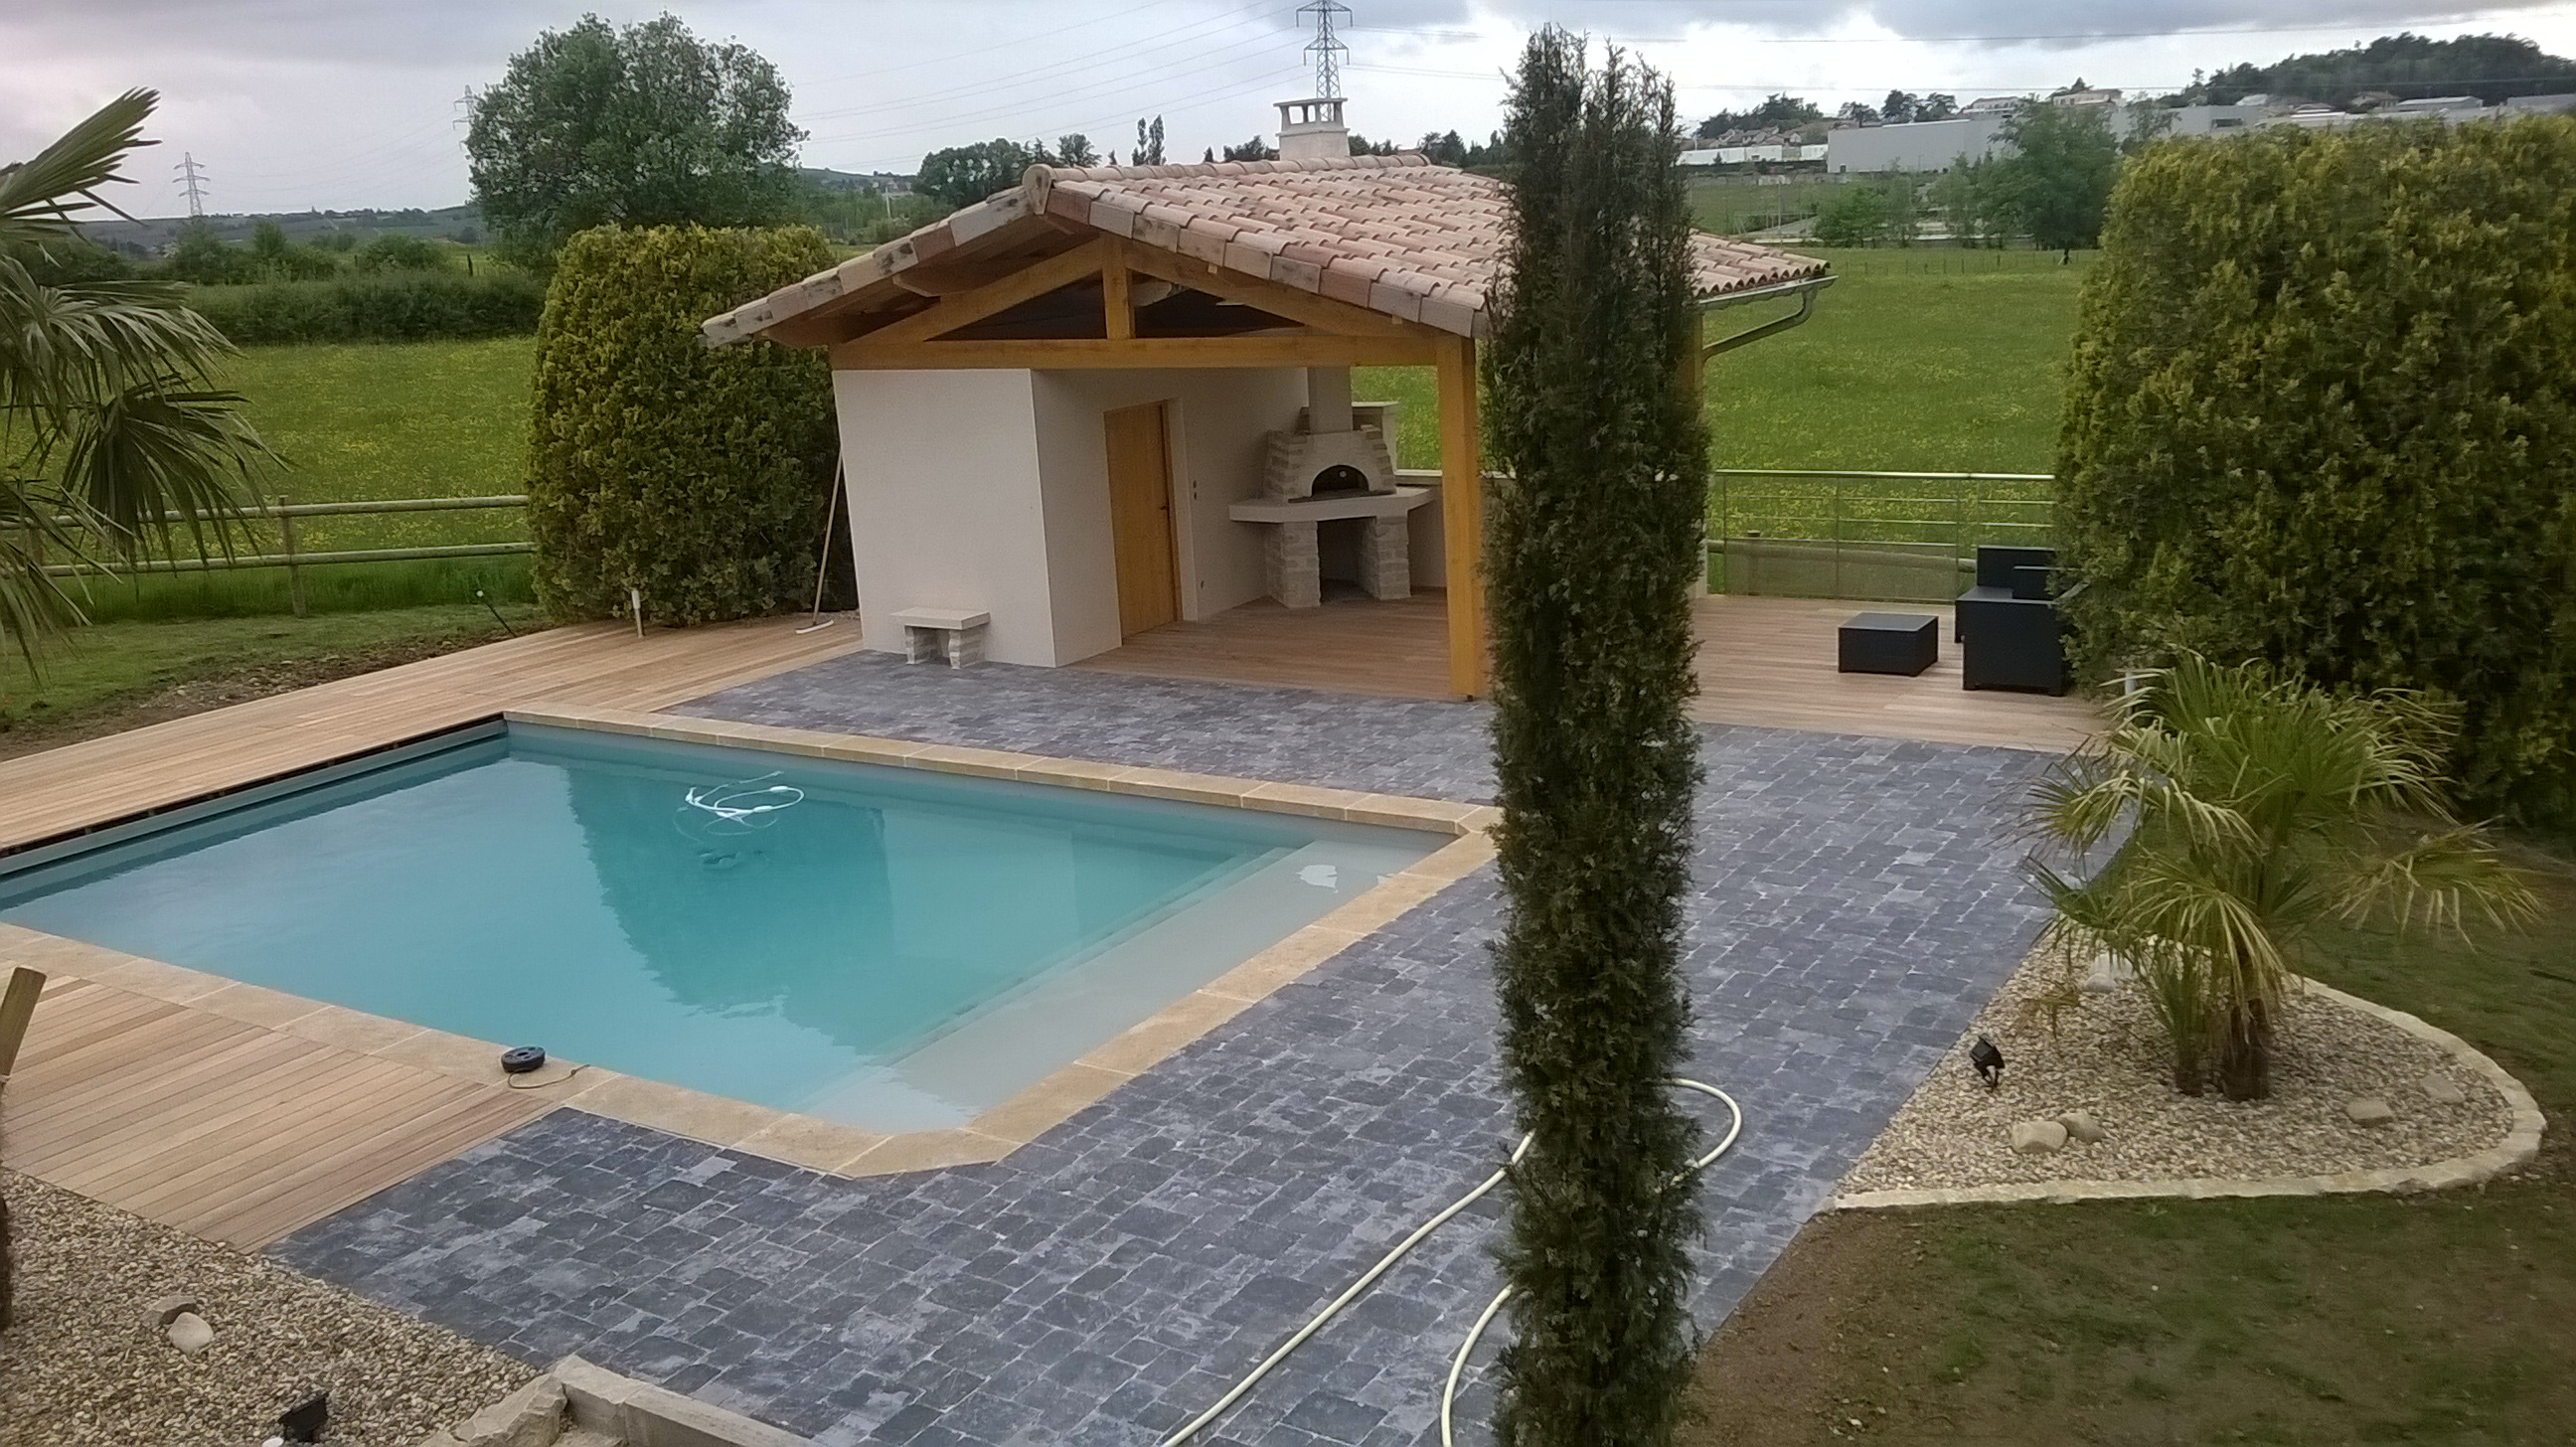 Nos r alisations jaca paysage for Pool house piscine